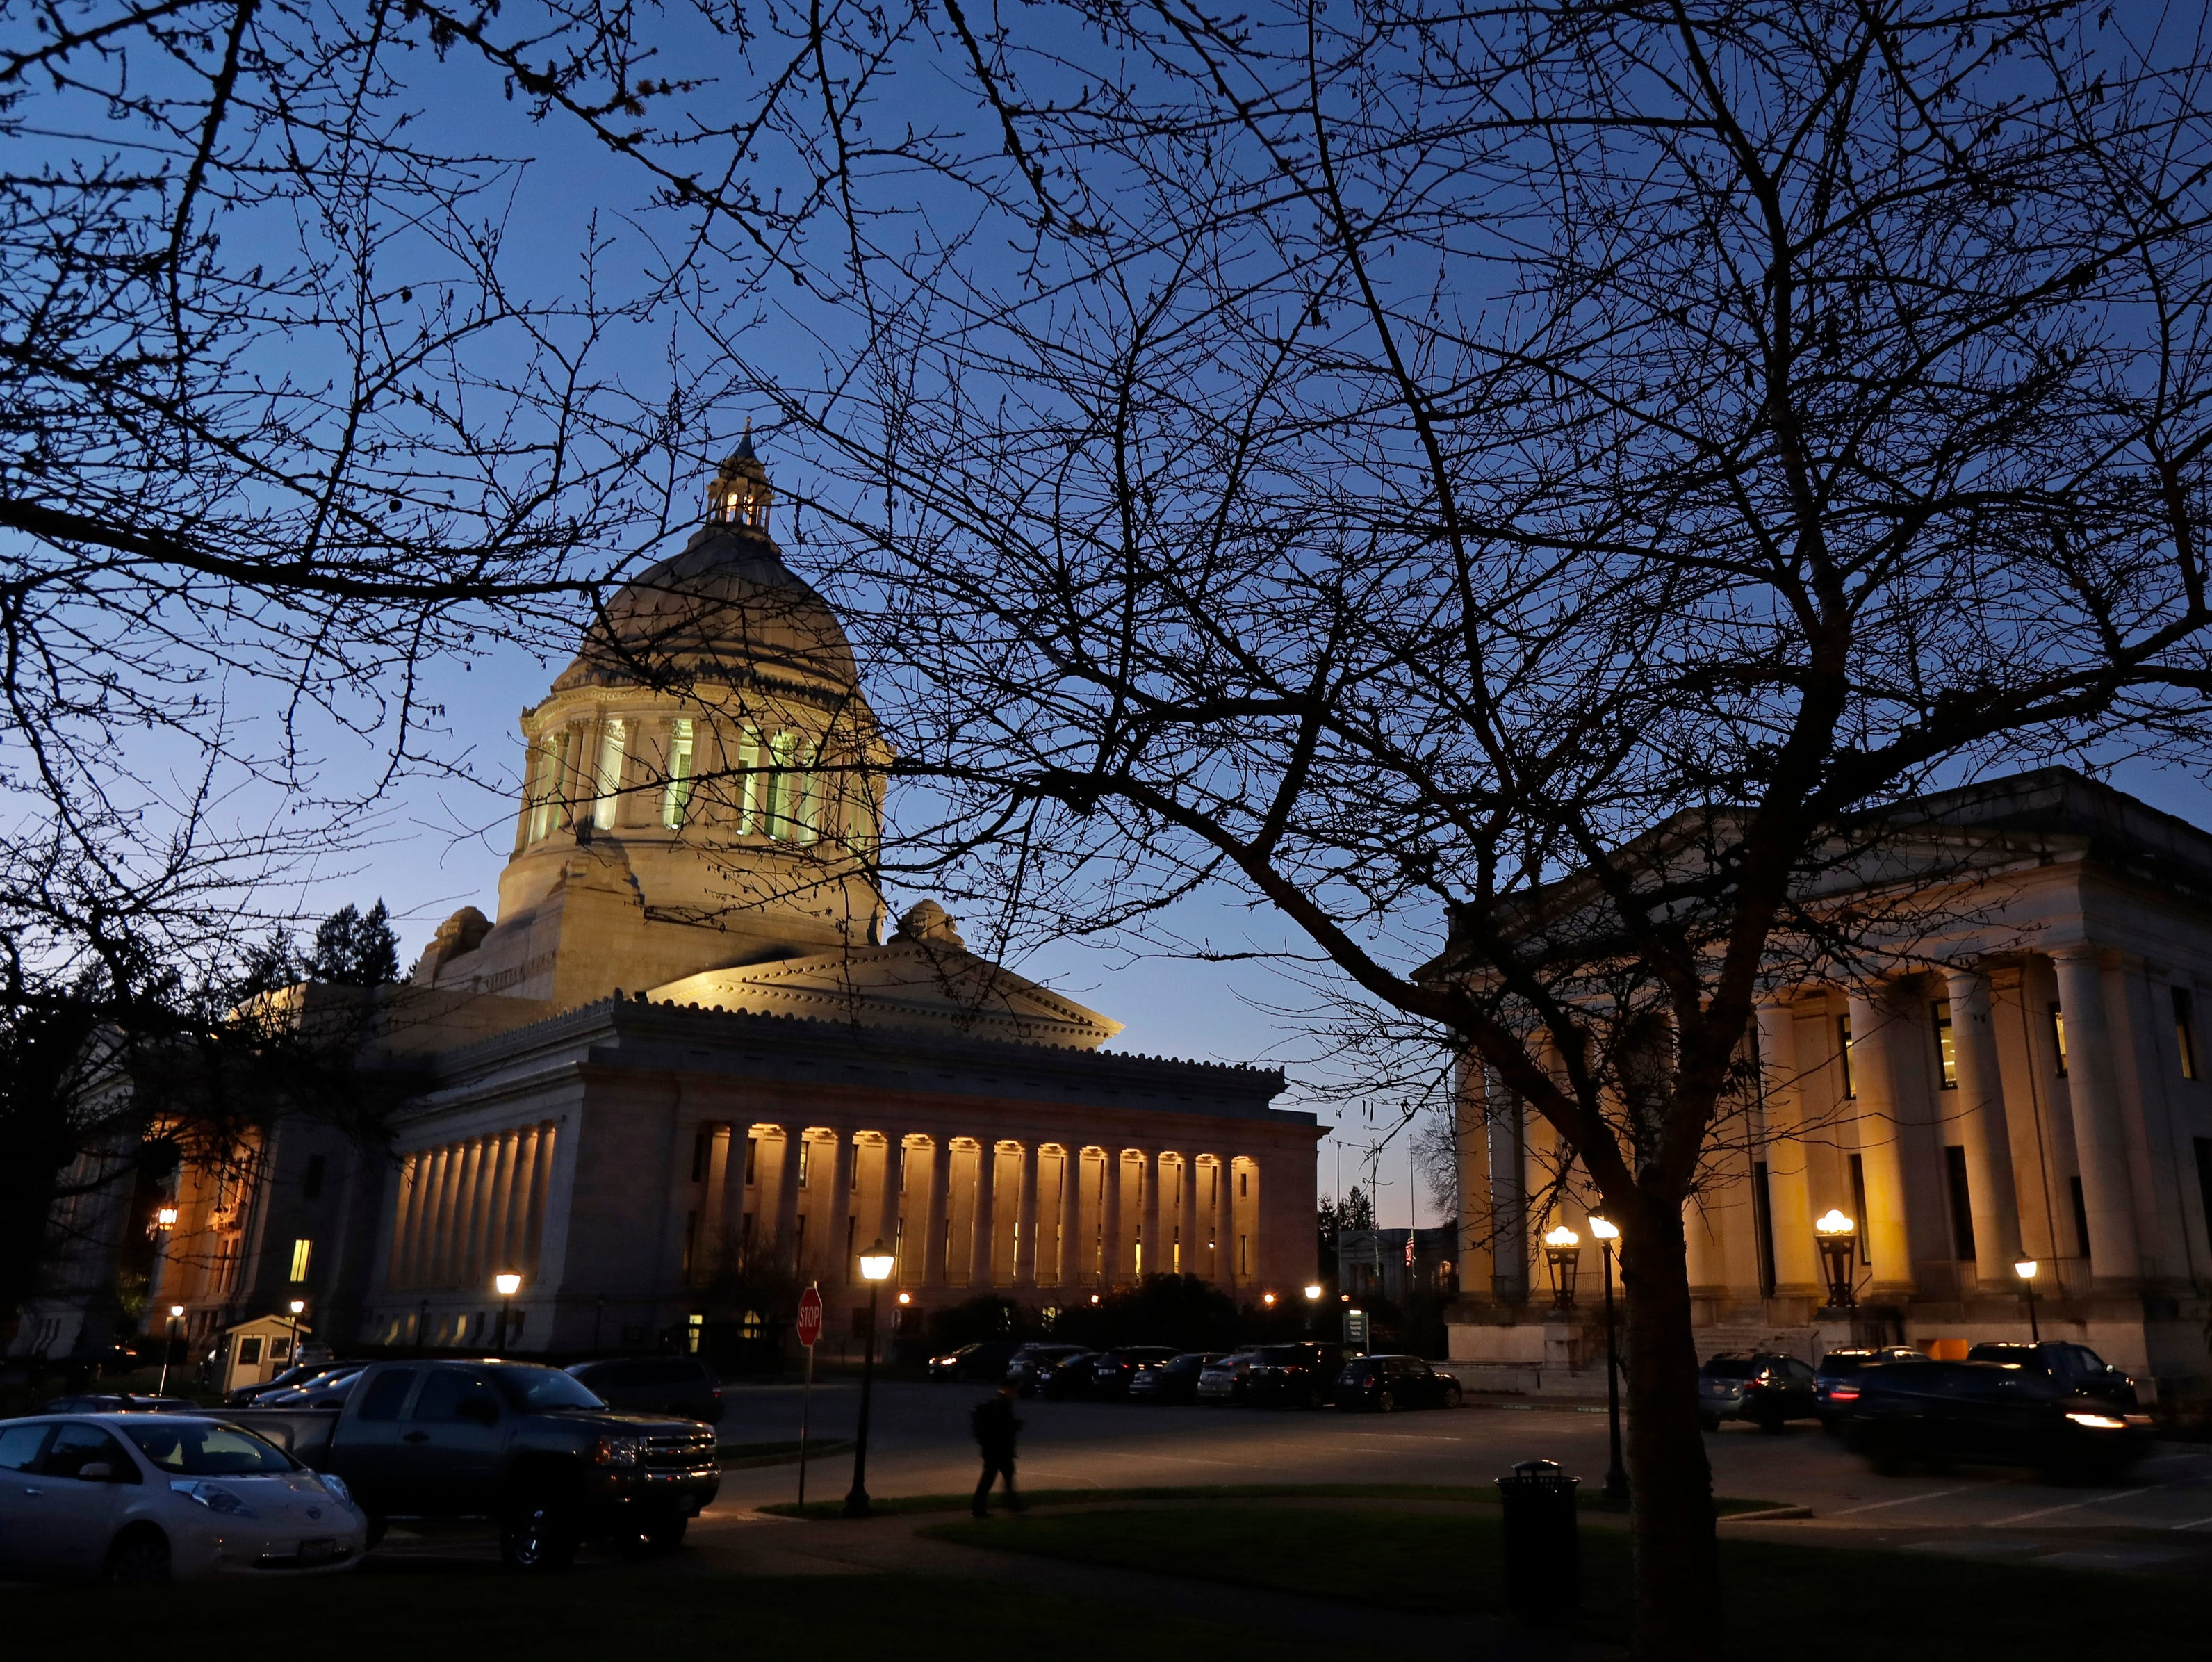 This Dec. 4, 2018, photo, shows the Legislative, left, and Insurance buildings at dusk at the Capitol in Olympia, Wash. In March 2018, following a public outcry, Gov. Jay Inslee vetoed a bill that sought to exempt Washington lawmakers from the state's Public Records Act, which would have allowed lawmakers to shield records sought by a coalition of media groups, led by The Associated Press, who mostly prevailed in a lawsuit. The story was among the state's top news stories of 2018. (AP Photo/Ted S. Warren)